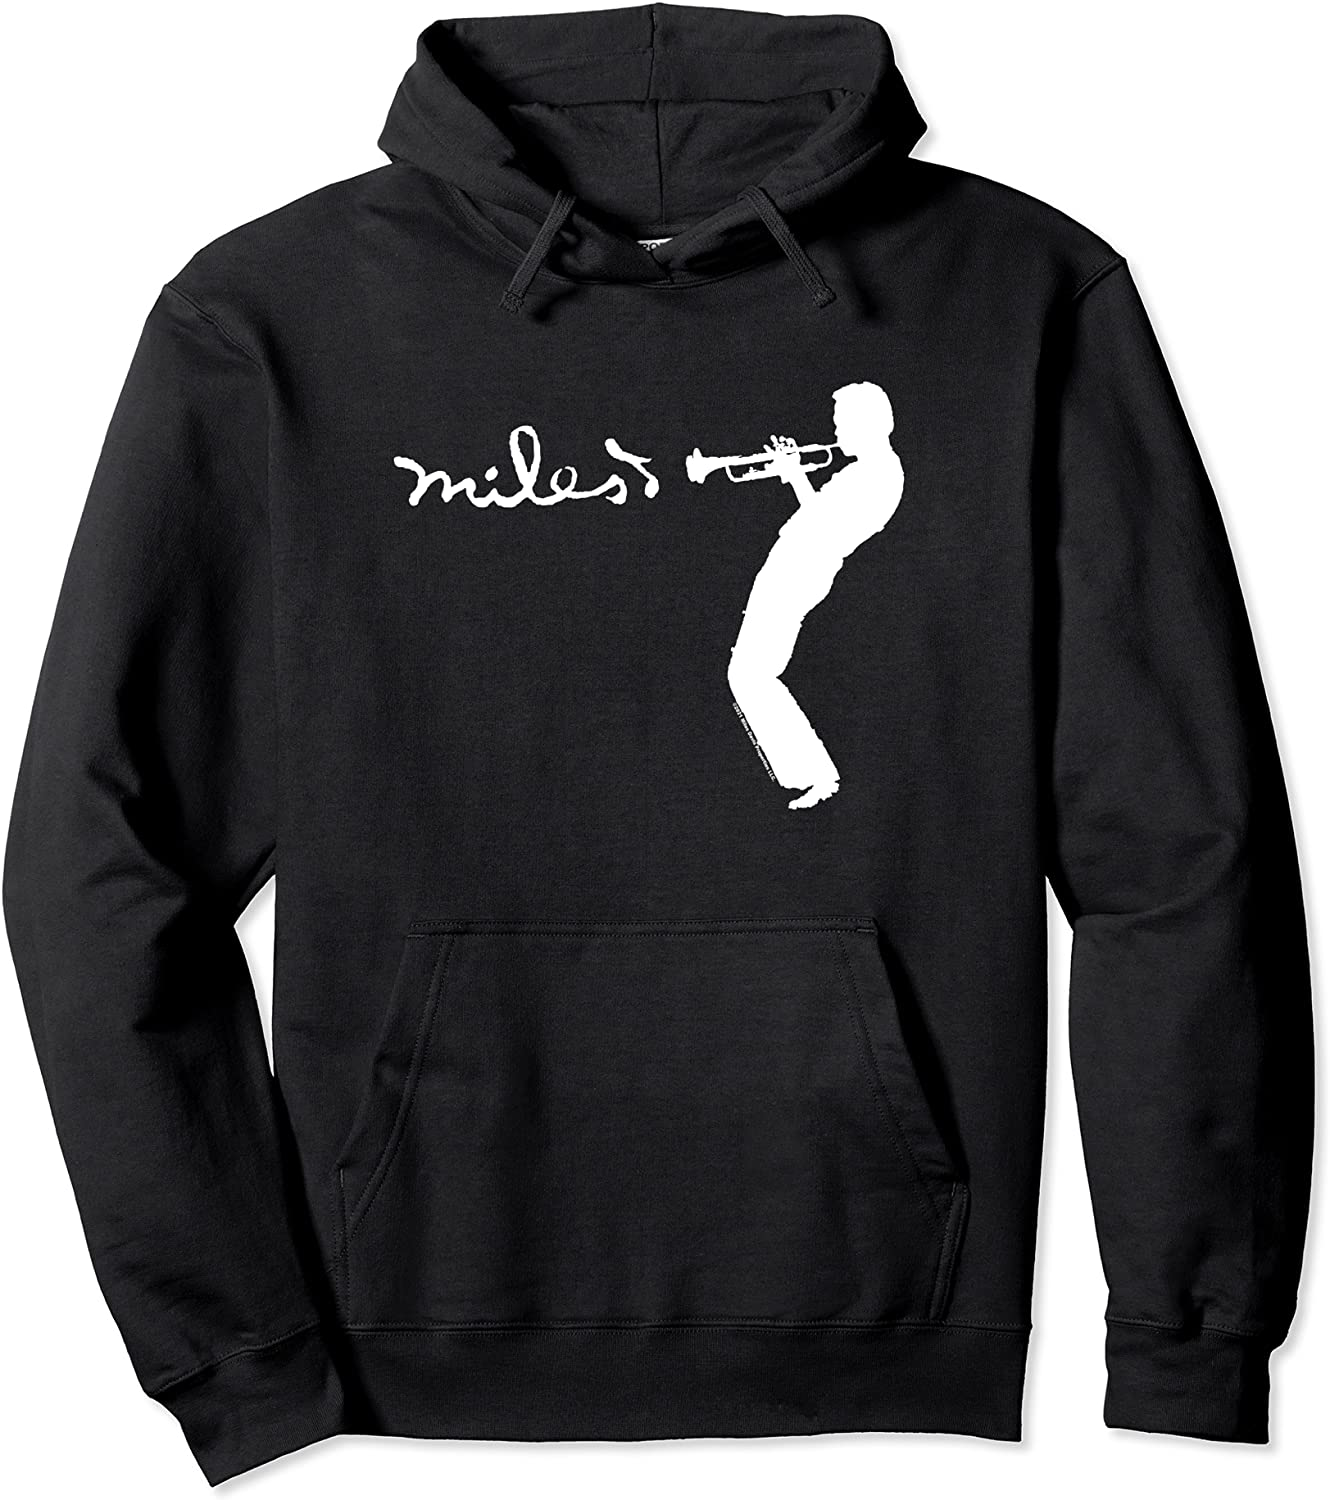 sold Max 62% OFF out Miles Davis Groovin' Pullover Hoodie